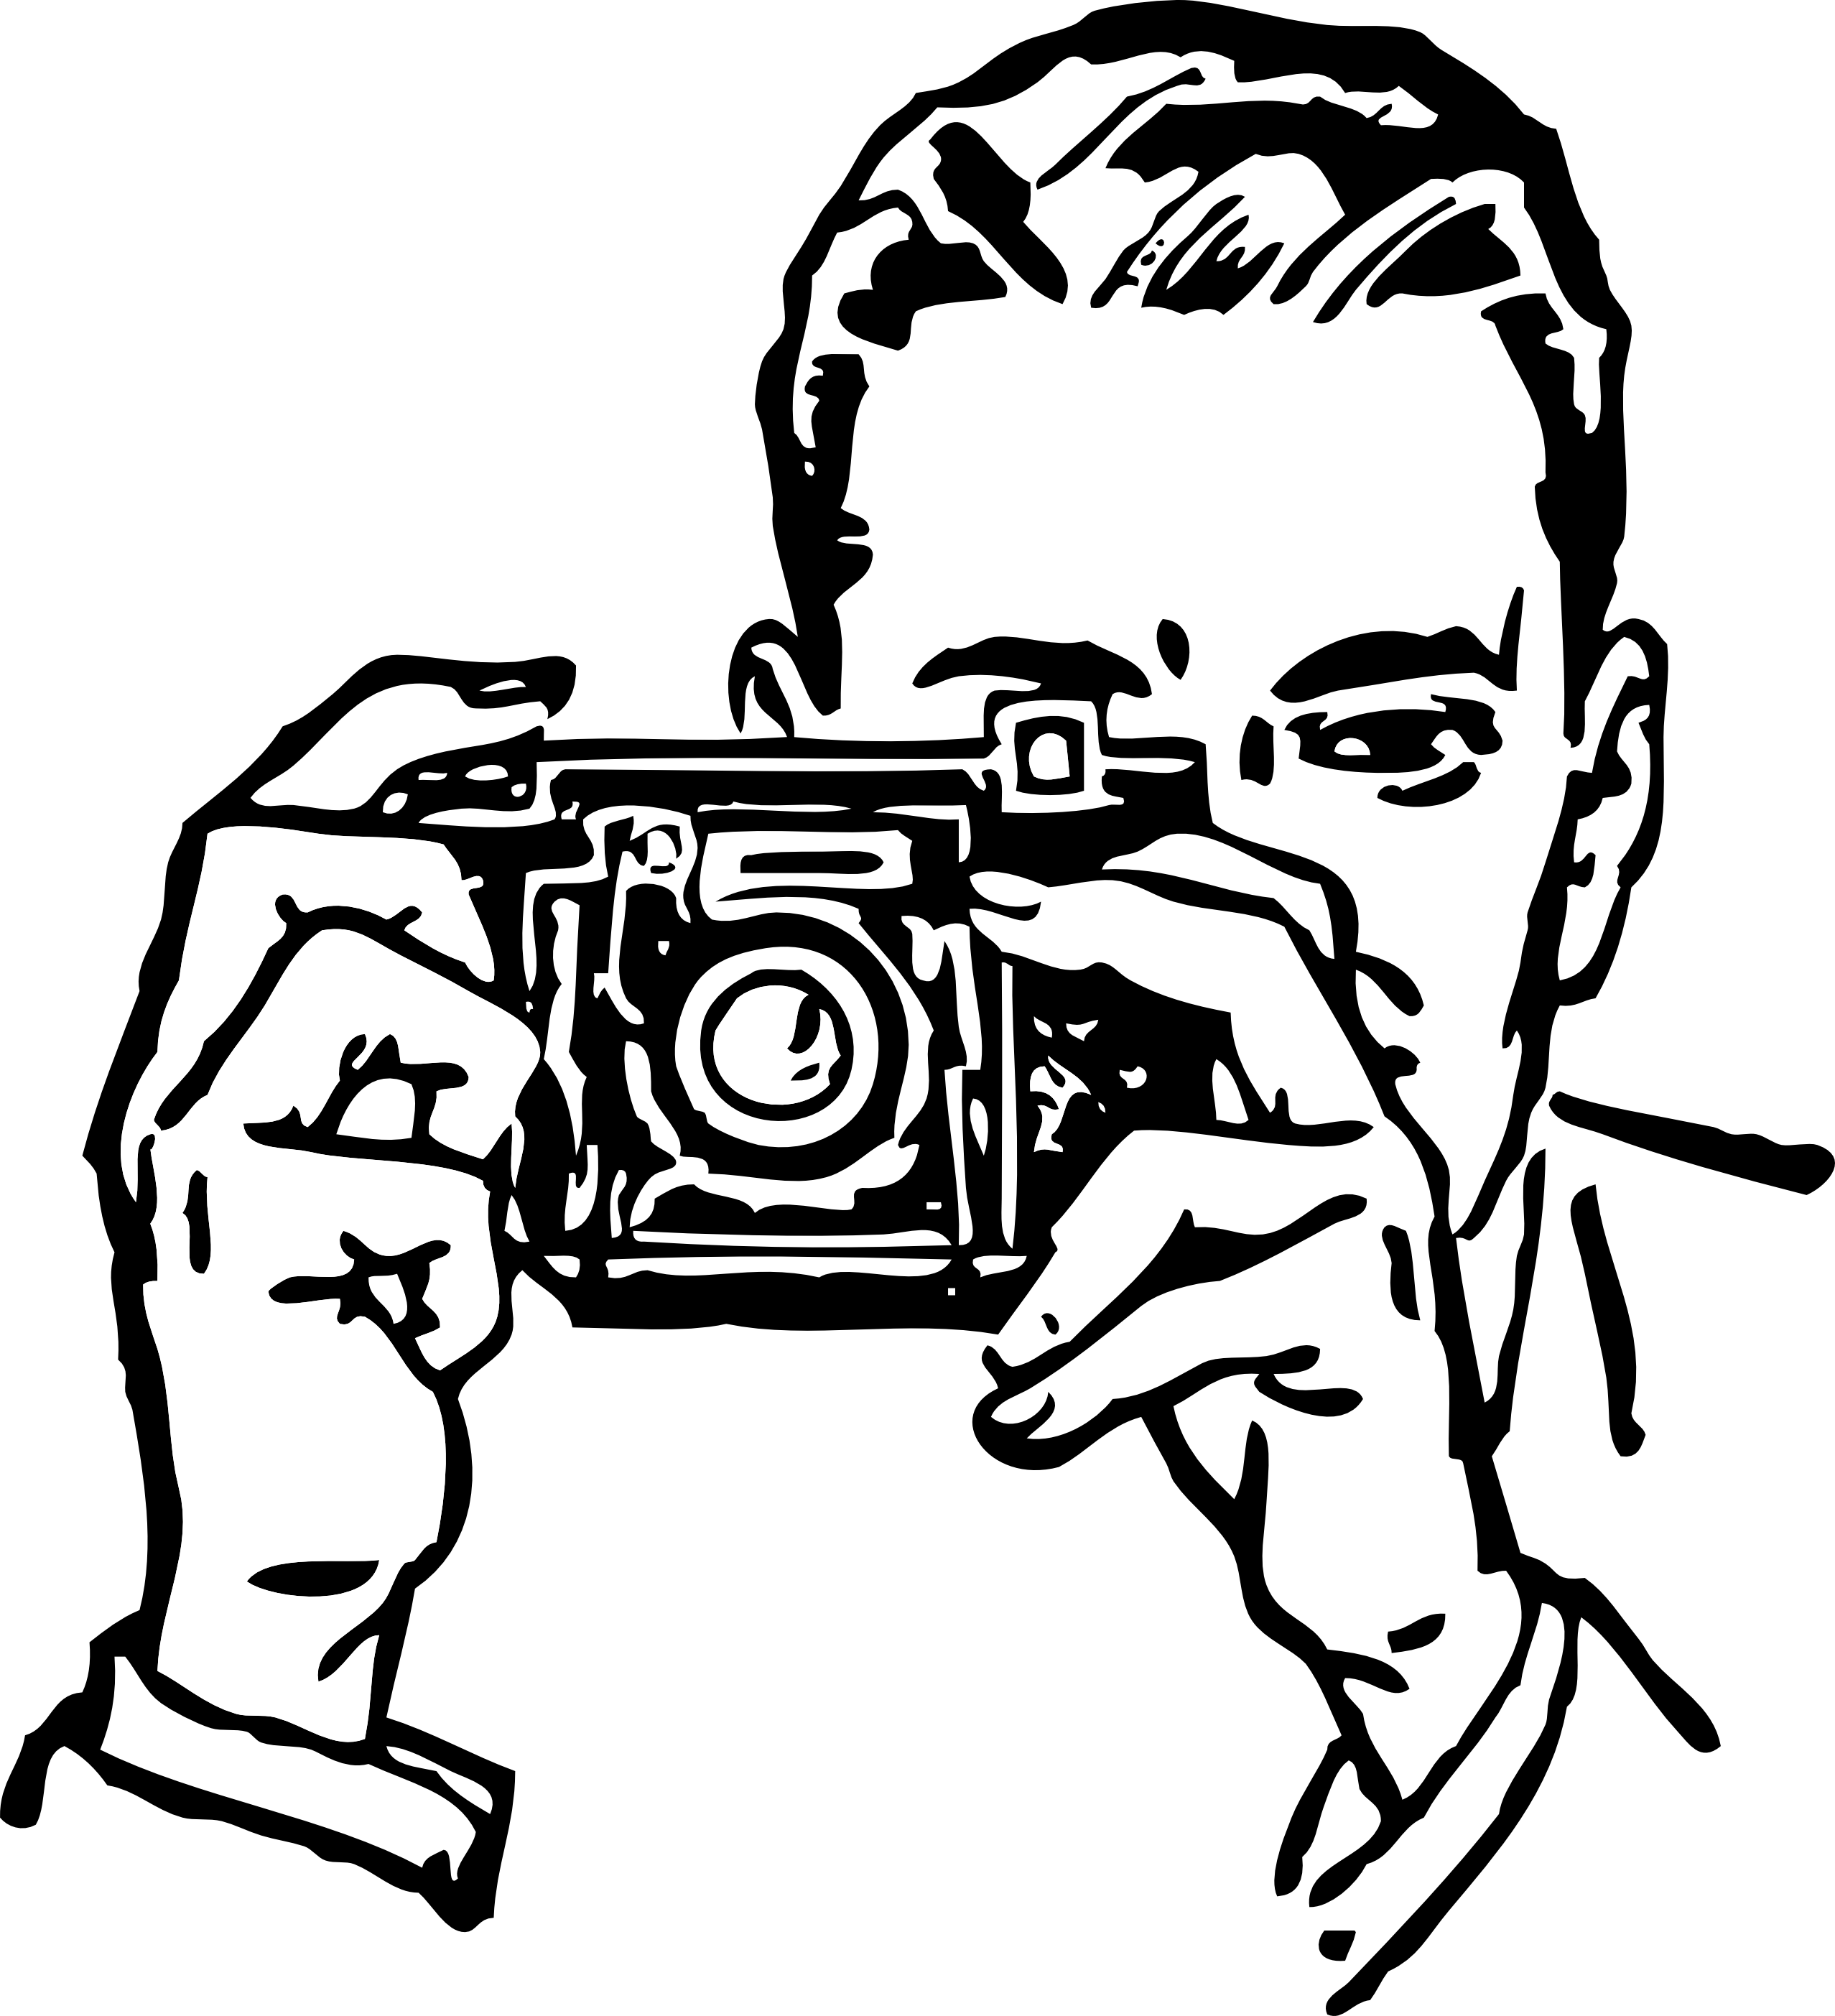 Camera black and white. Statistics clipart photography